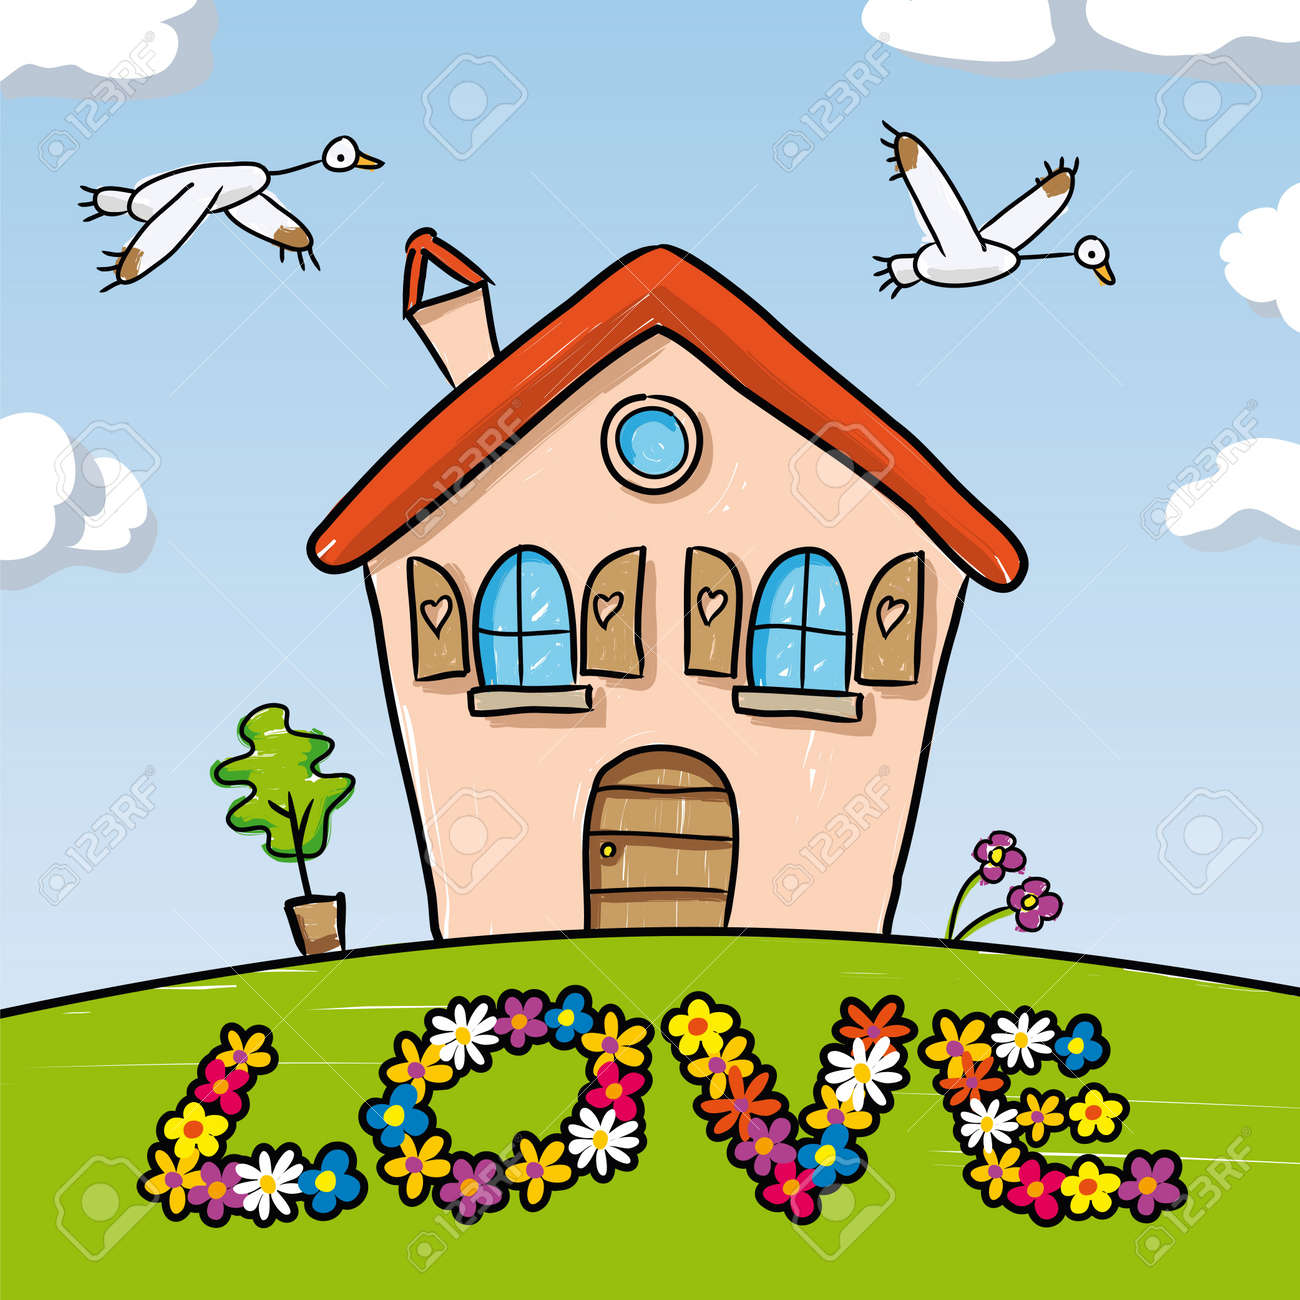 Dream Home Stock Vector - 10590185